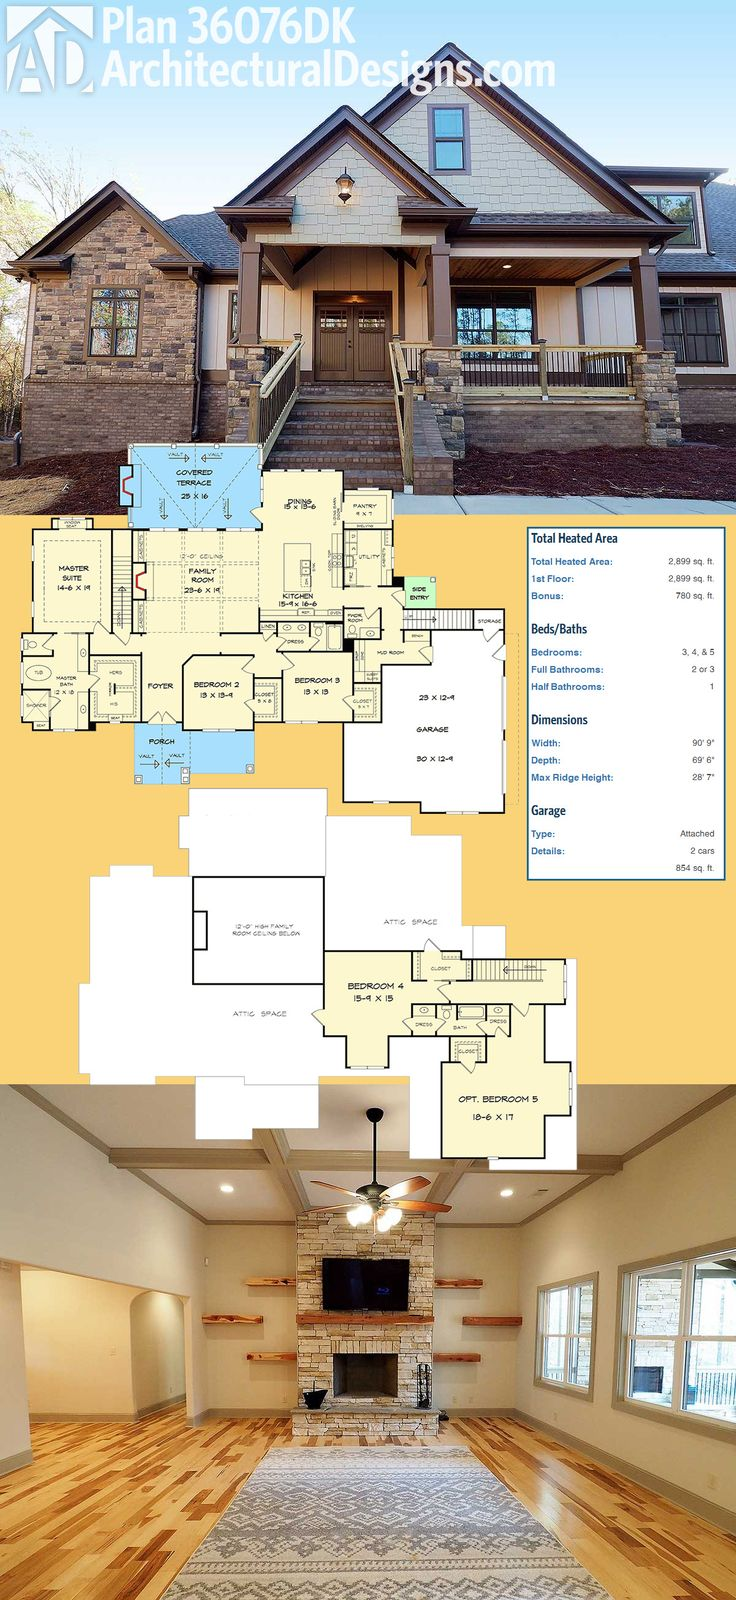 Best 25 House plans design ideas only on Pinterest House floor